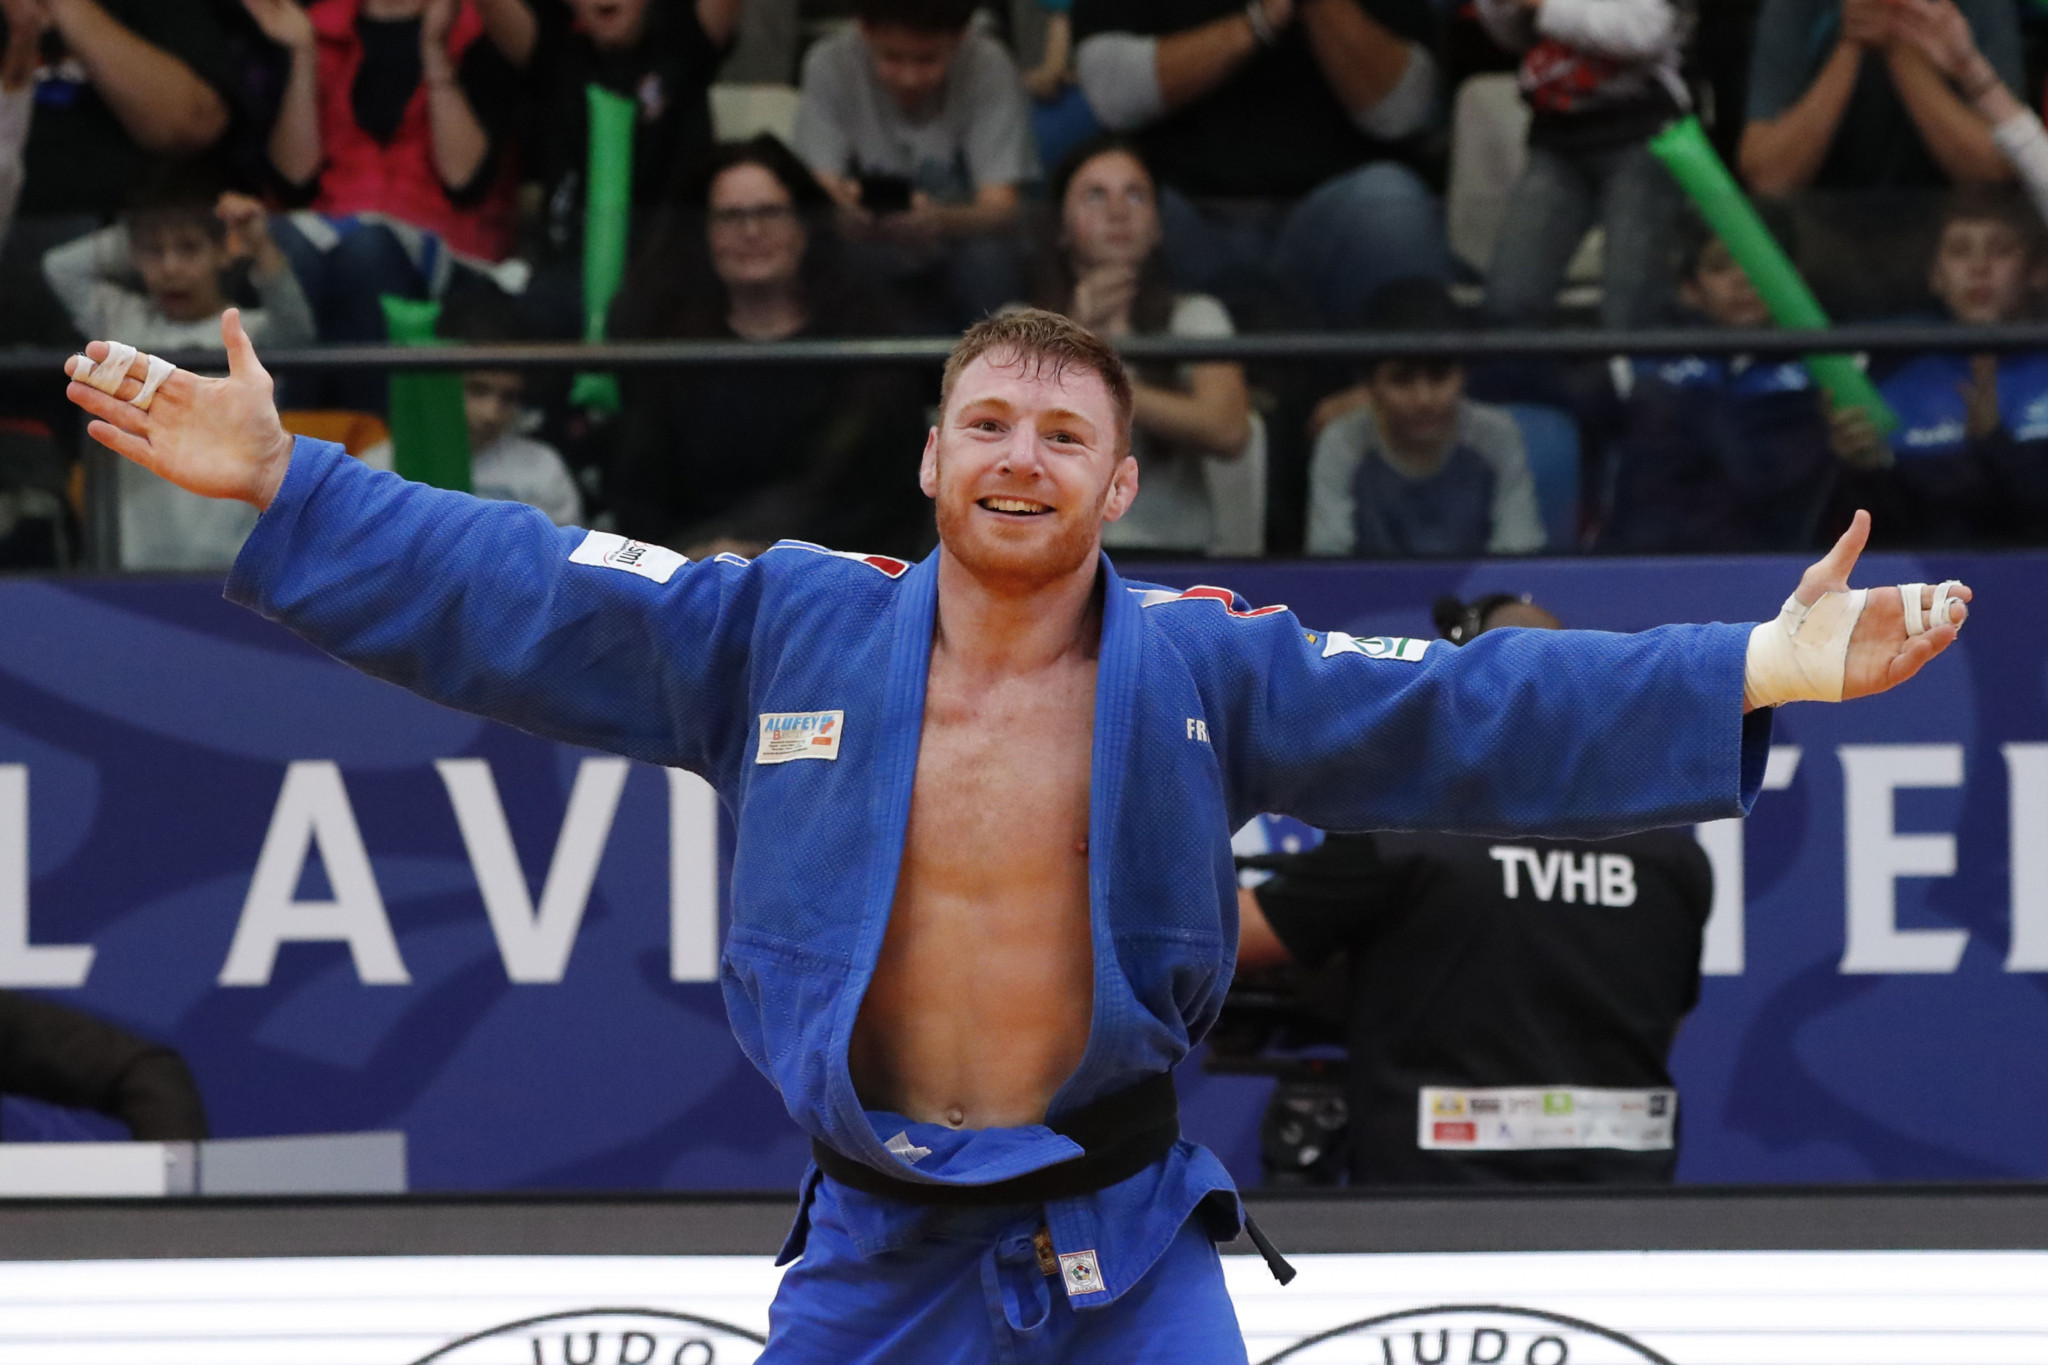 Axel Clerget claimed one of France's two golds today at the IJF Tel Aviv Grand Prix ©Getty Images